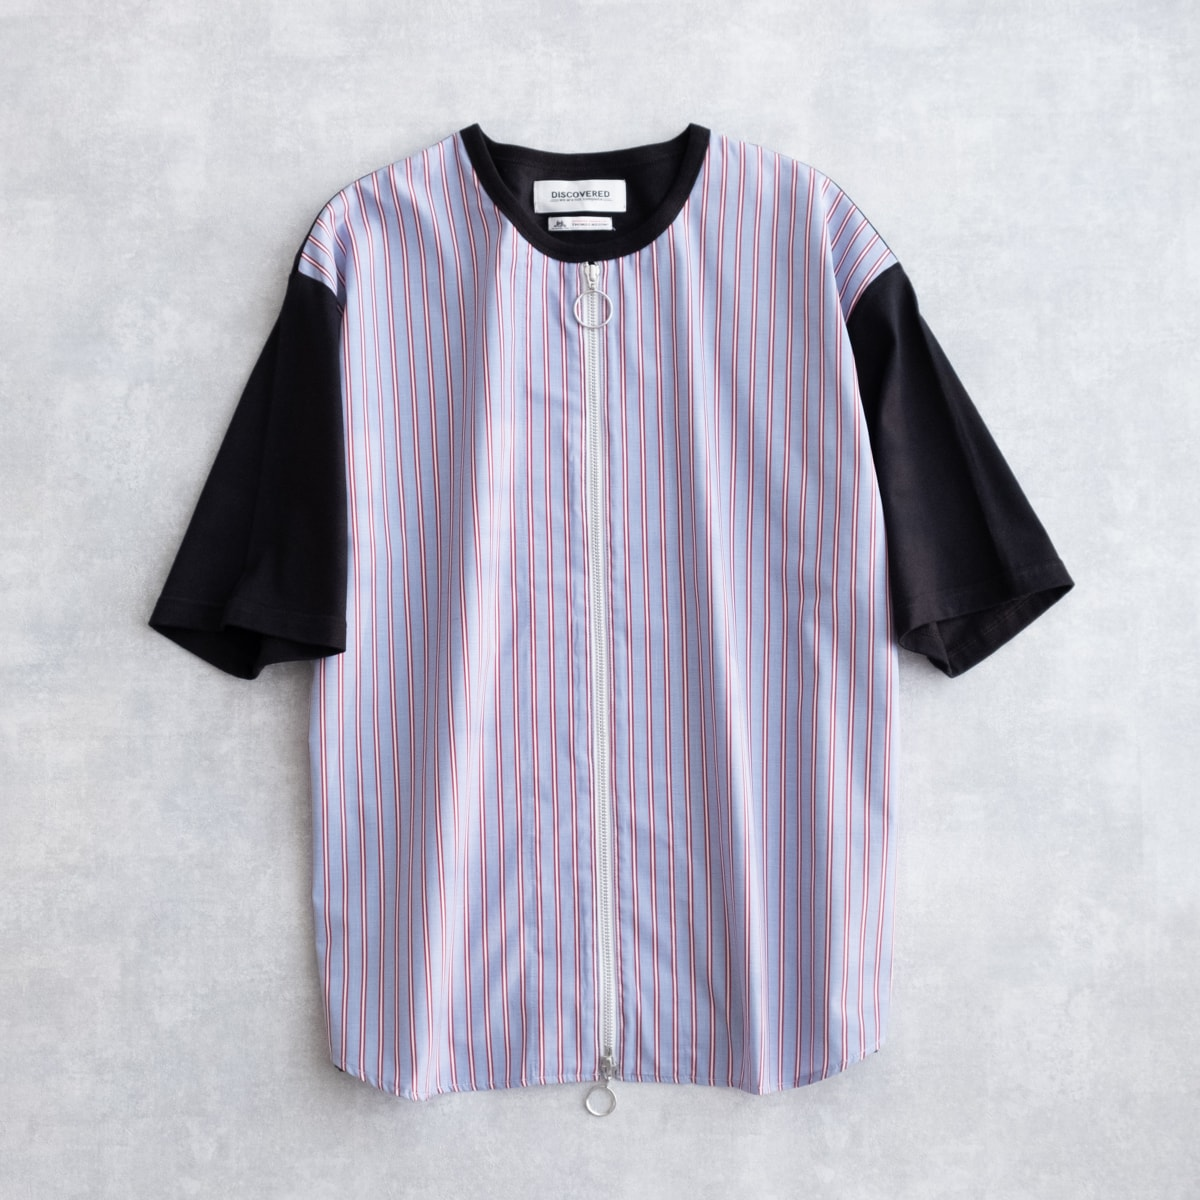 【SALE 50%OFF】 DISCOVERED SHIRT MIX CUTSEWN (2色 BLACK×RED/WHITE×NAVY) DC-SS19-CU-15 ディスカ...